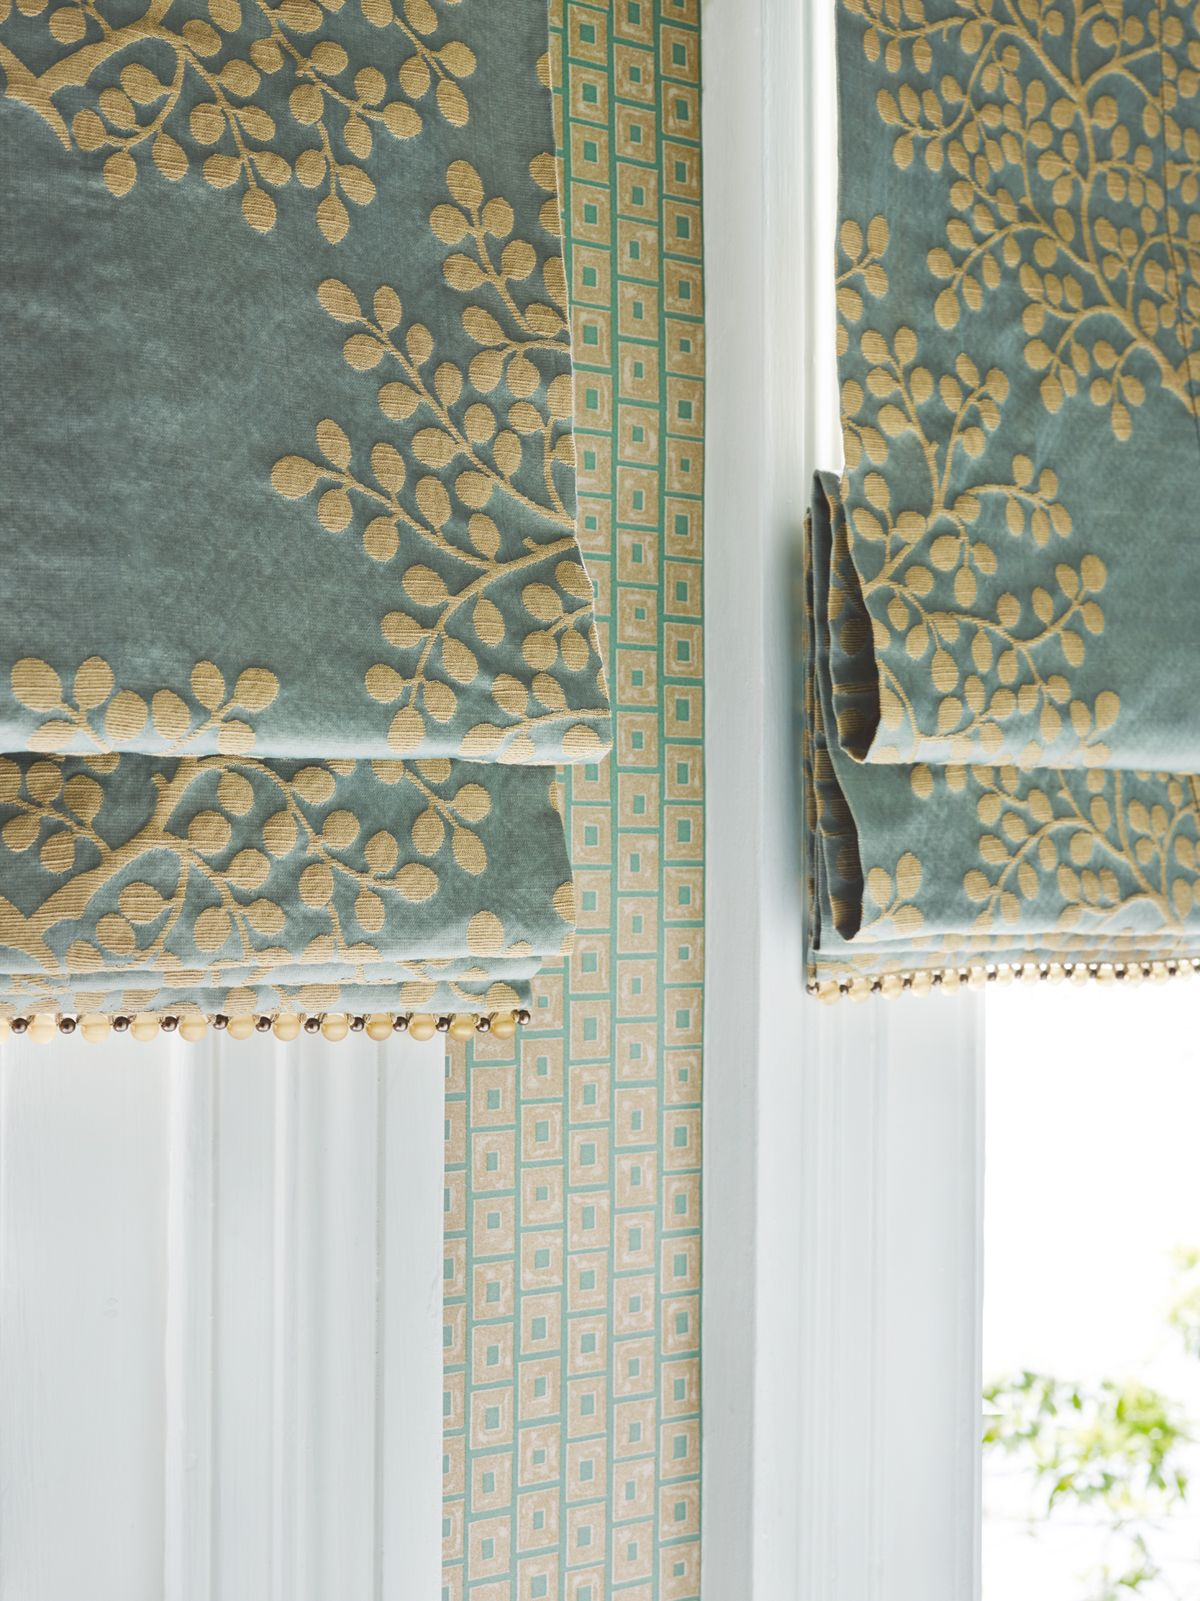 1000 images about roman shades balloons on pinterest Curtains venetian blinds